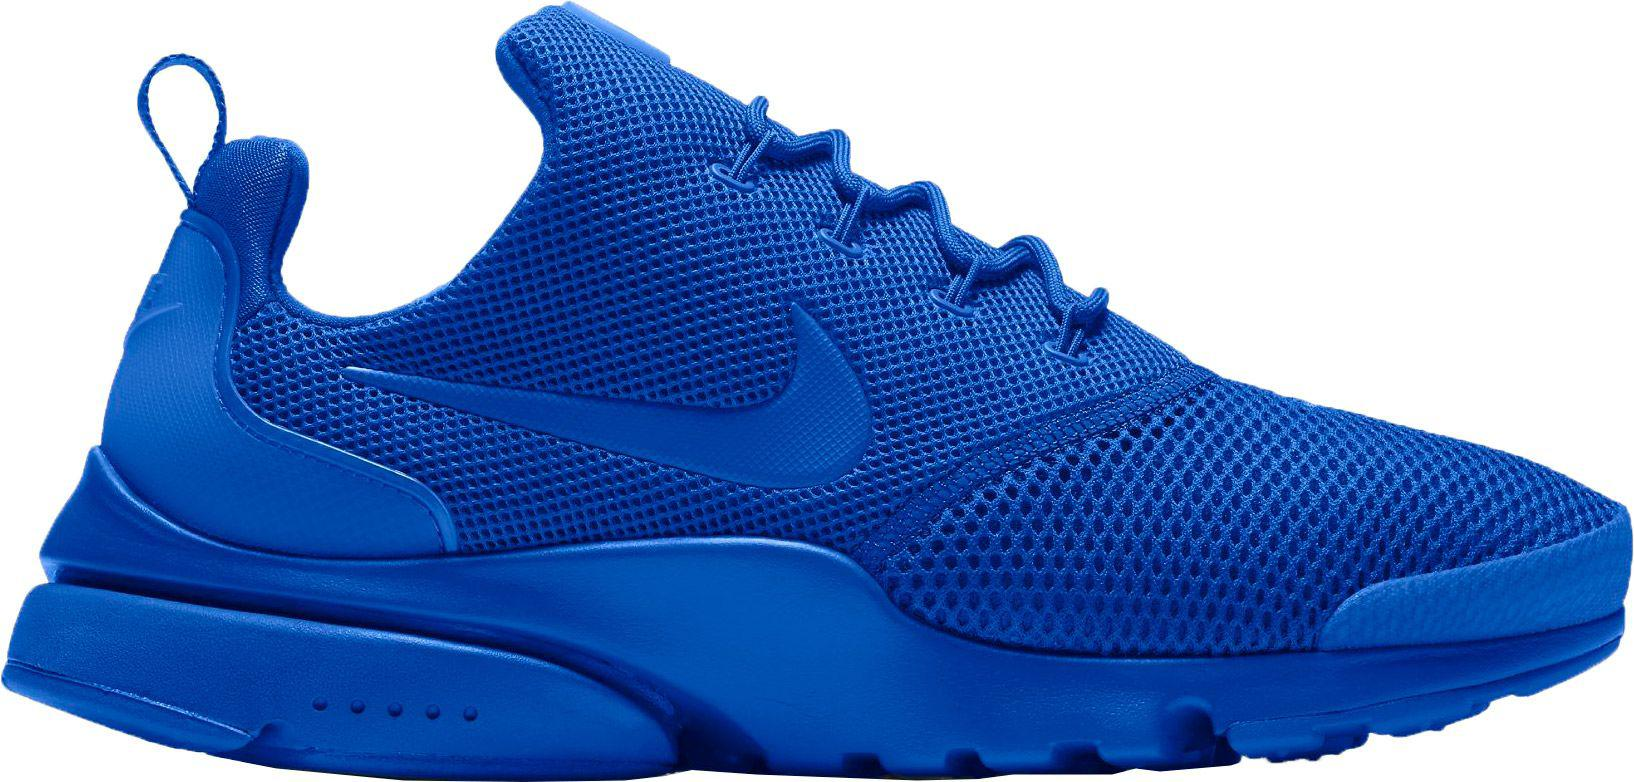 finest selection 7ab46 d1a0a Nike - Blue Presto Fly Shoes for Men - Lyst